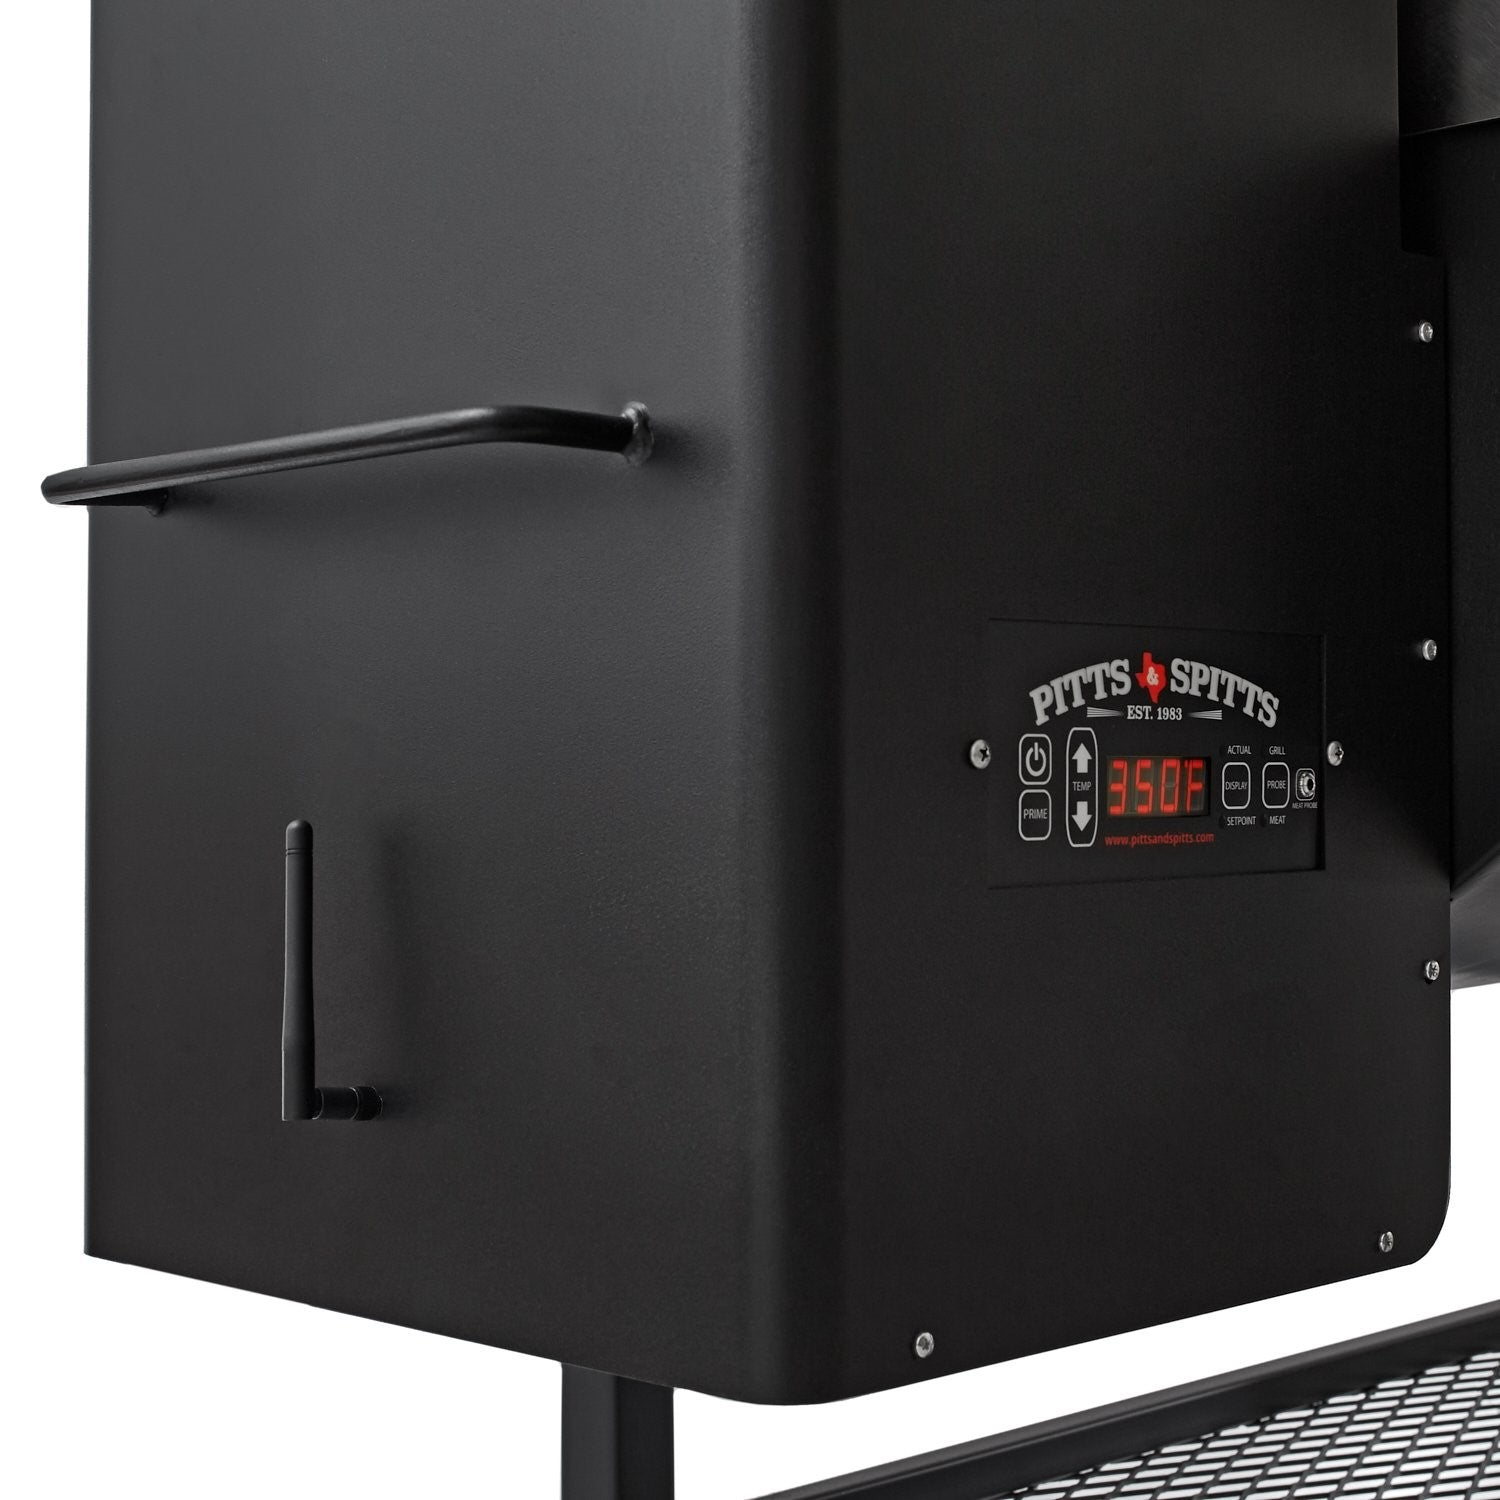 Pitts & Spitts - Maverick Pellet Grill Series WiFi Module